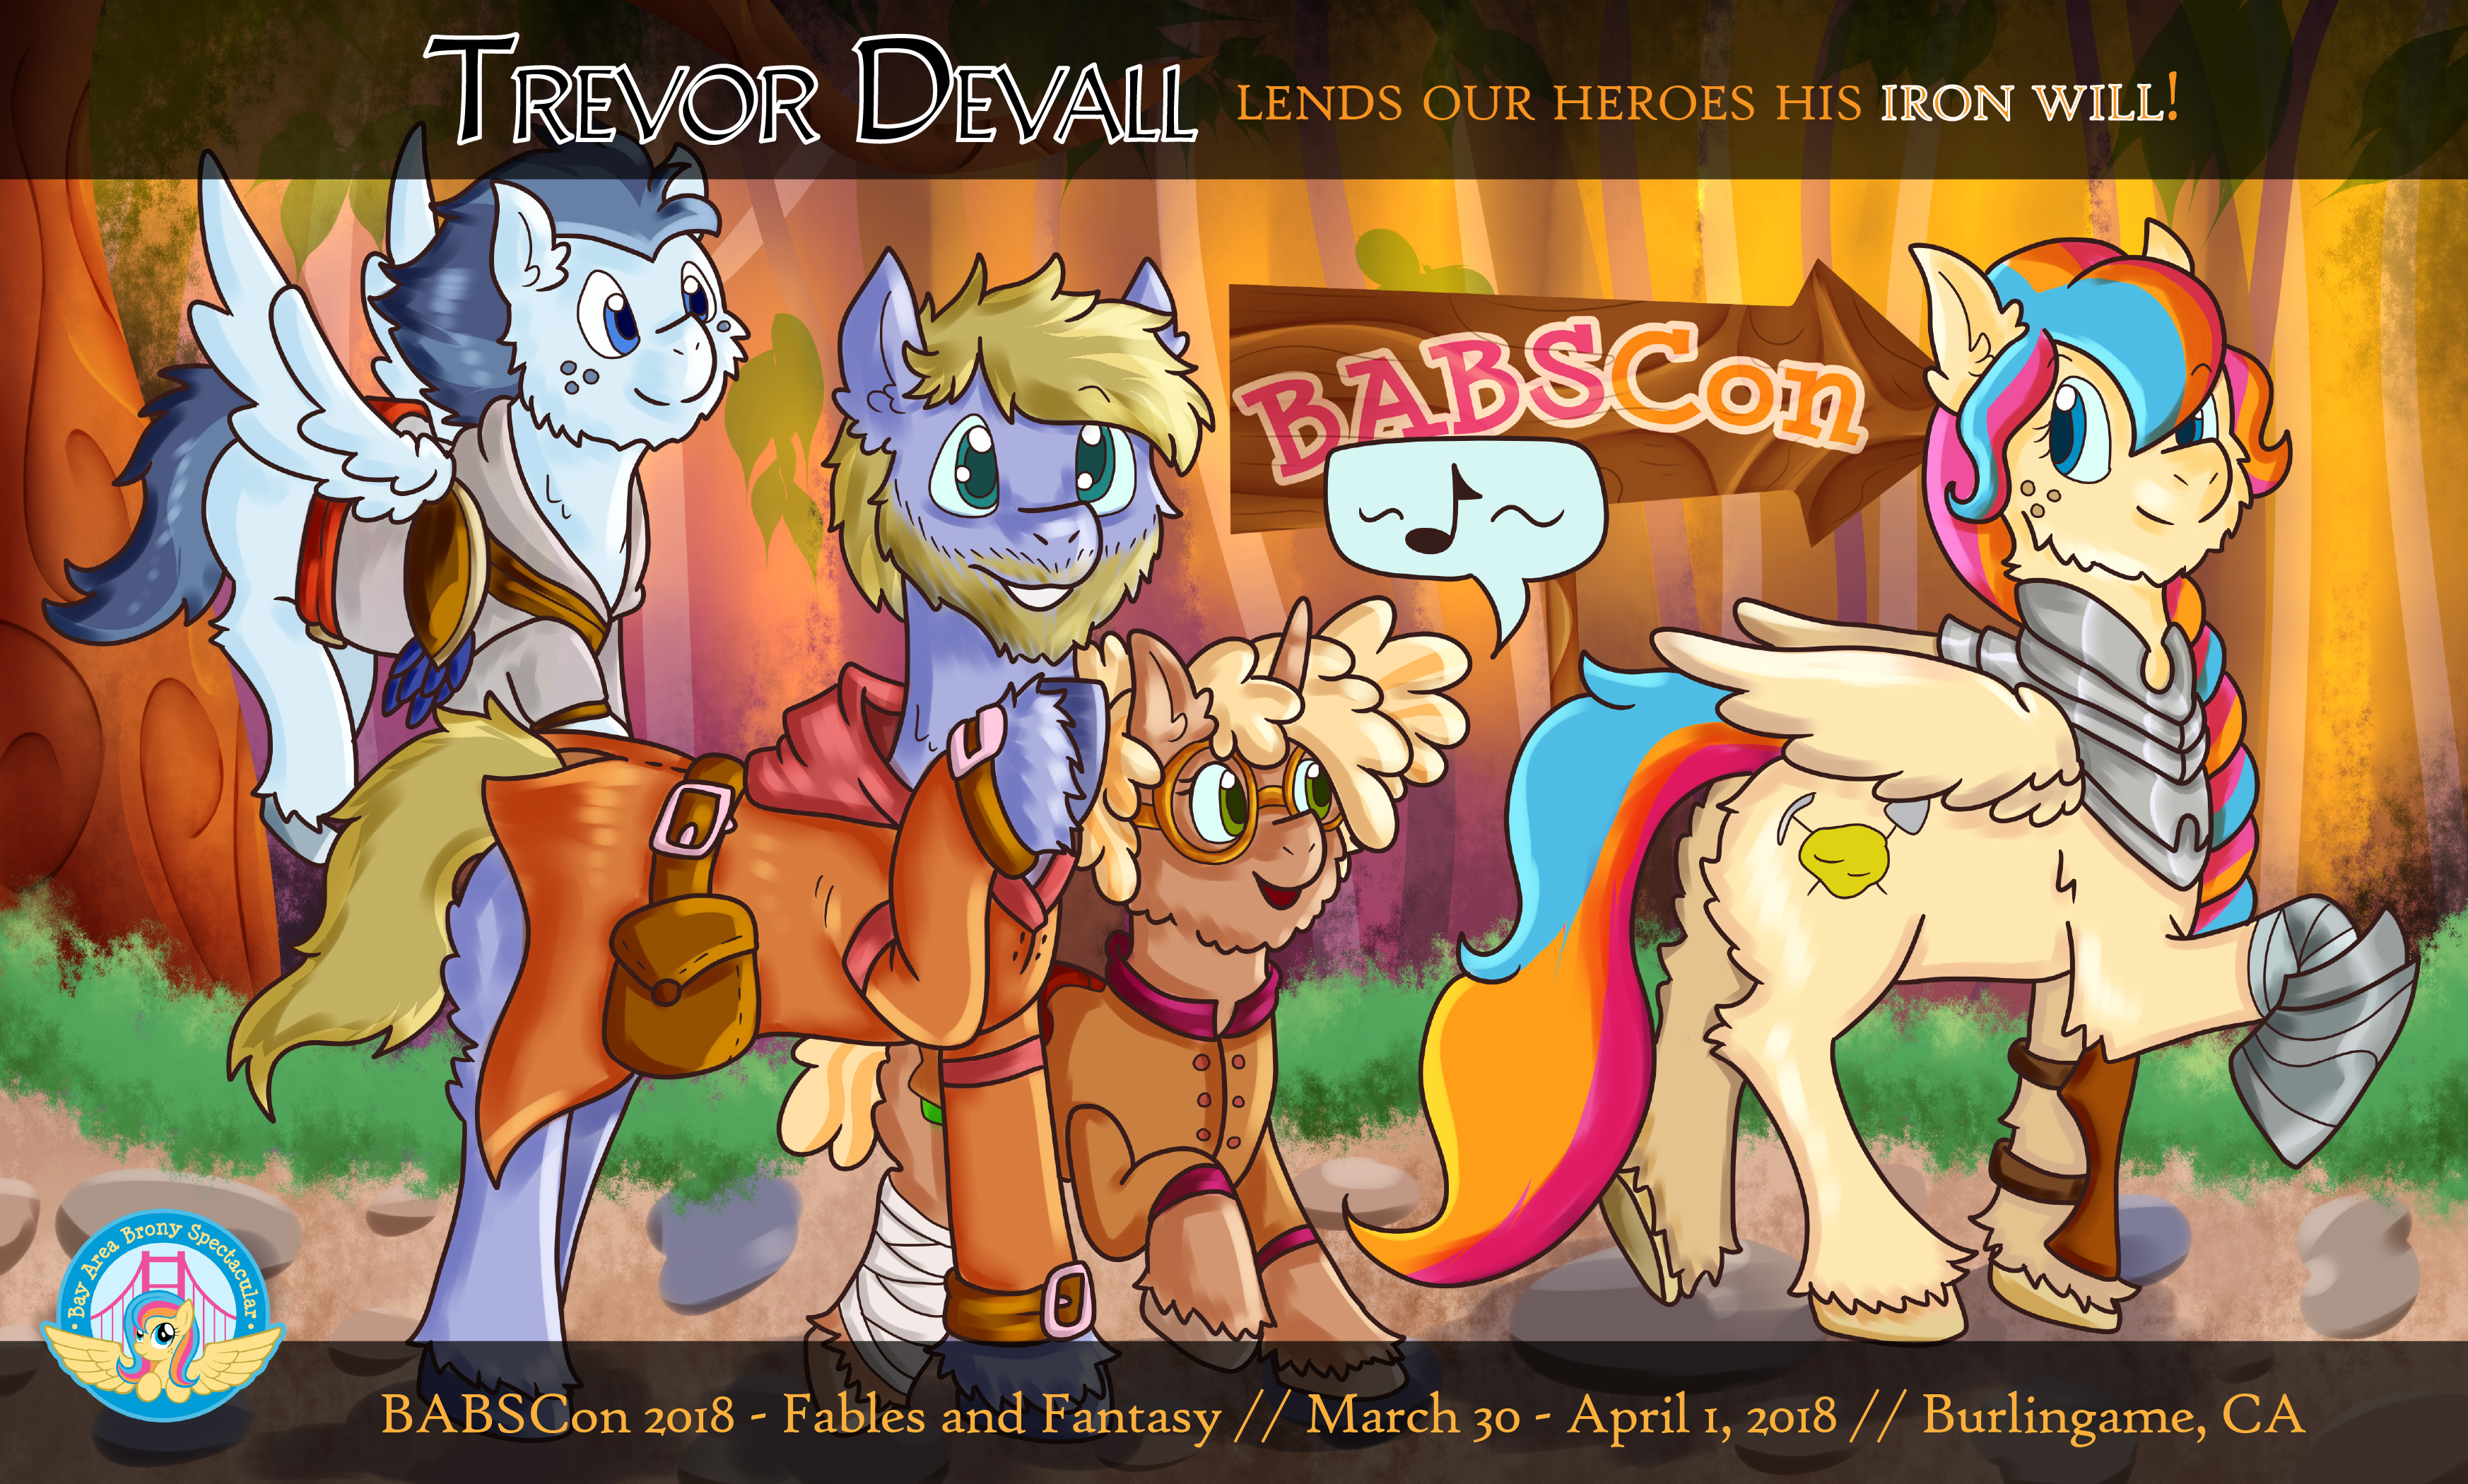 Trevor Devall Brings his Iron Will to BABSCon!